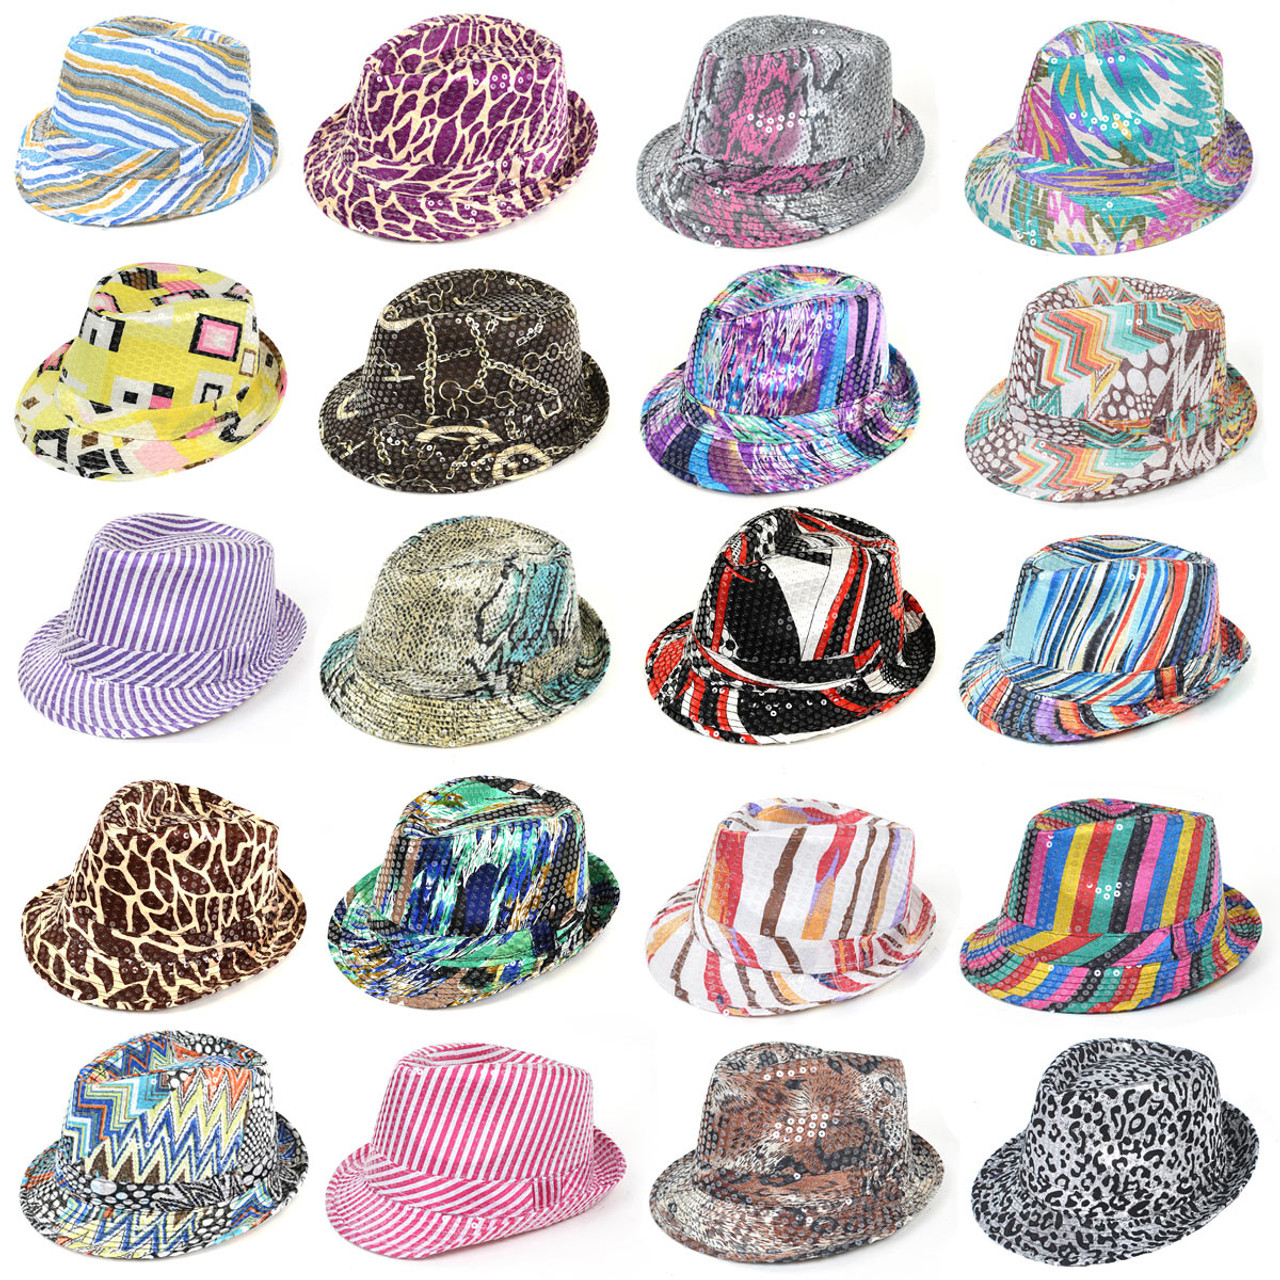 36pc Mixed Unisex Sequin Fedora Hats H1024-CO aeed88252e48